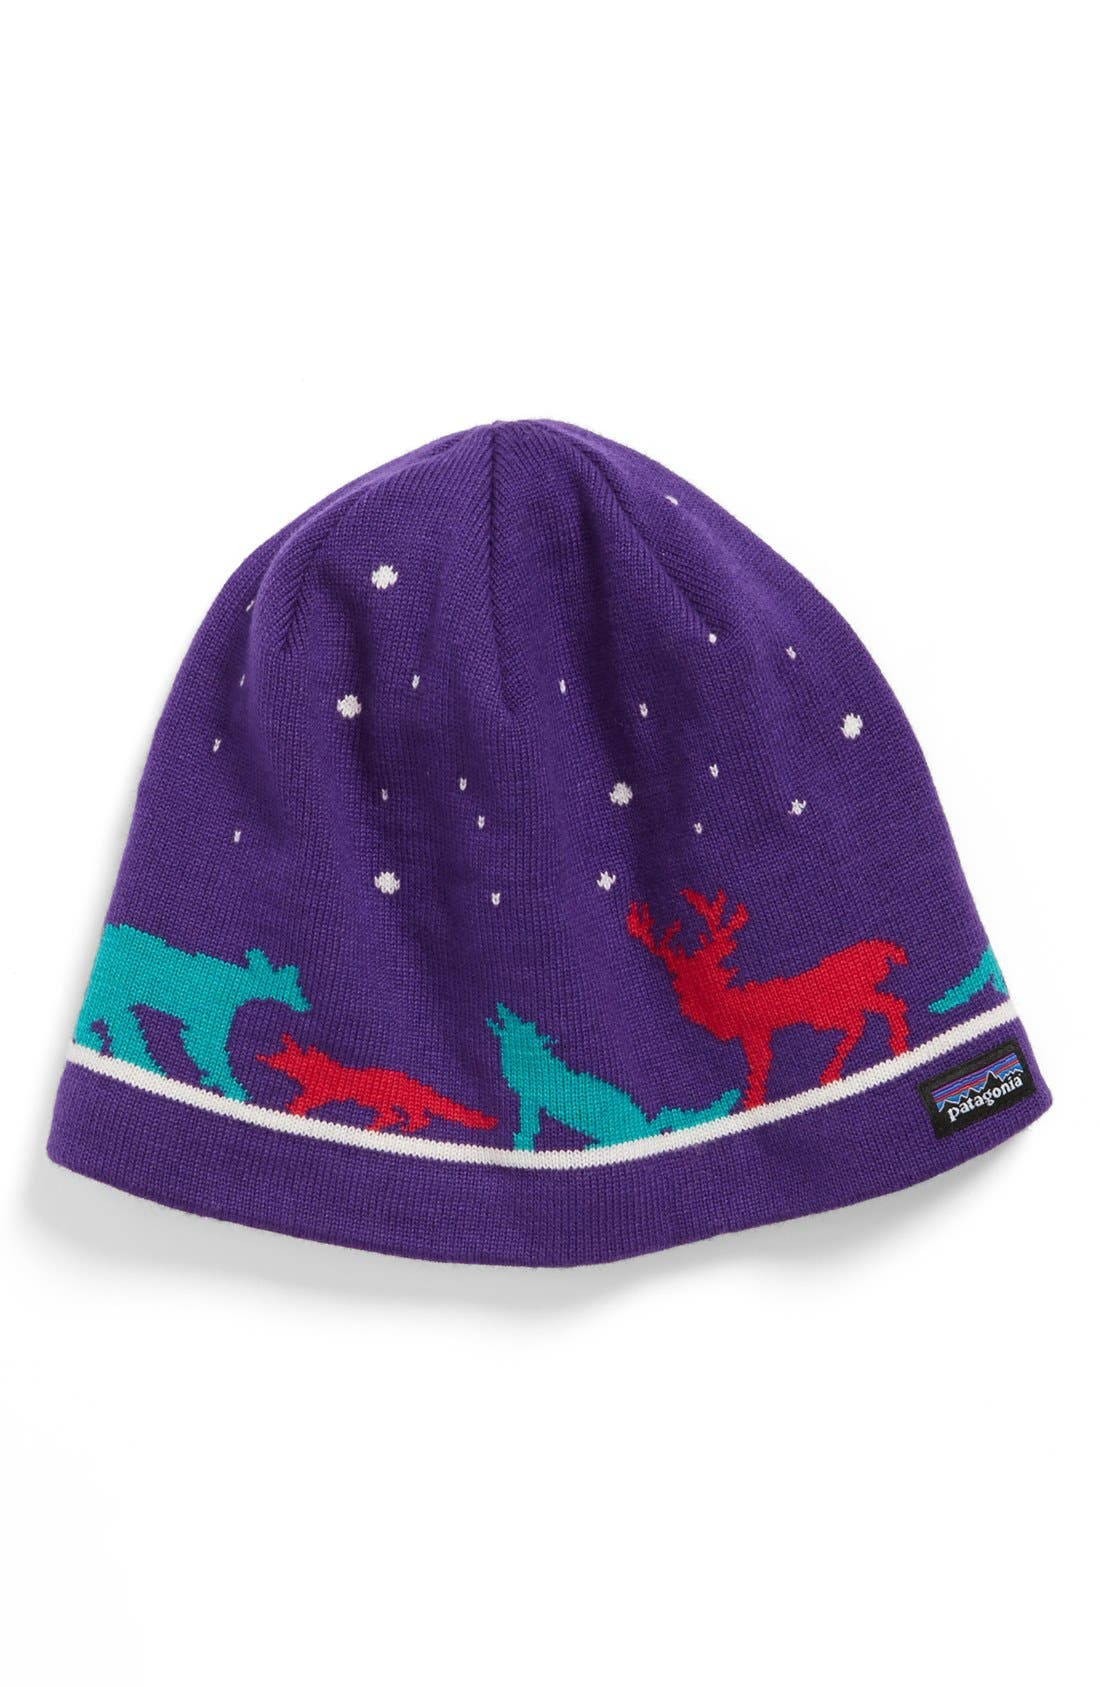 Alternate Image 1 Selected - Patagonia Knit Beanie (Girls)